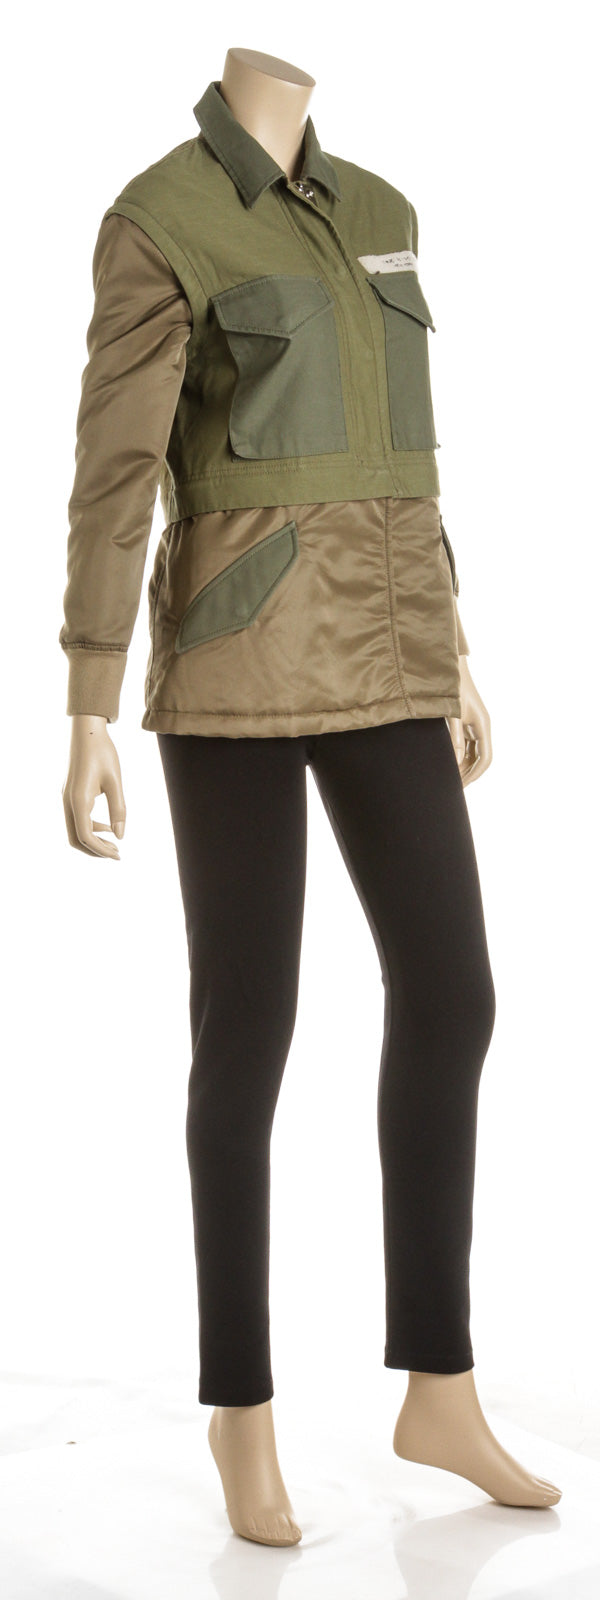 Rag and Bone Green and Khaki Cotton and Nylon Multi-functional Jacket (Size XXS)